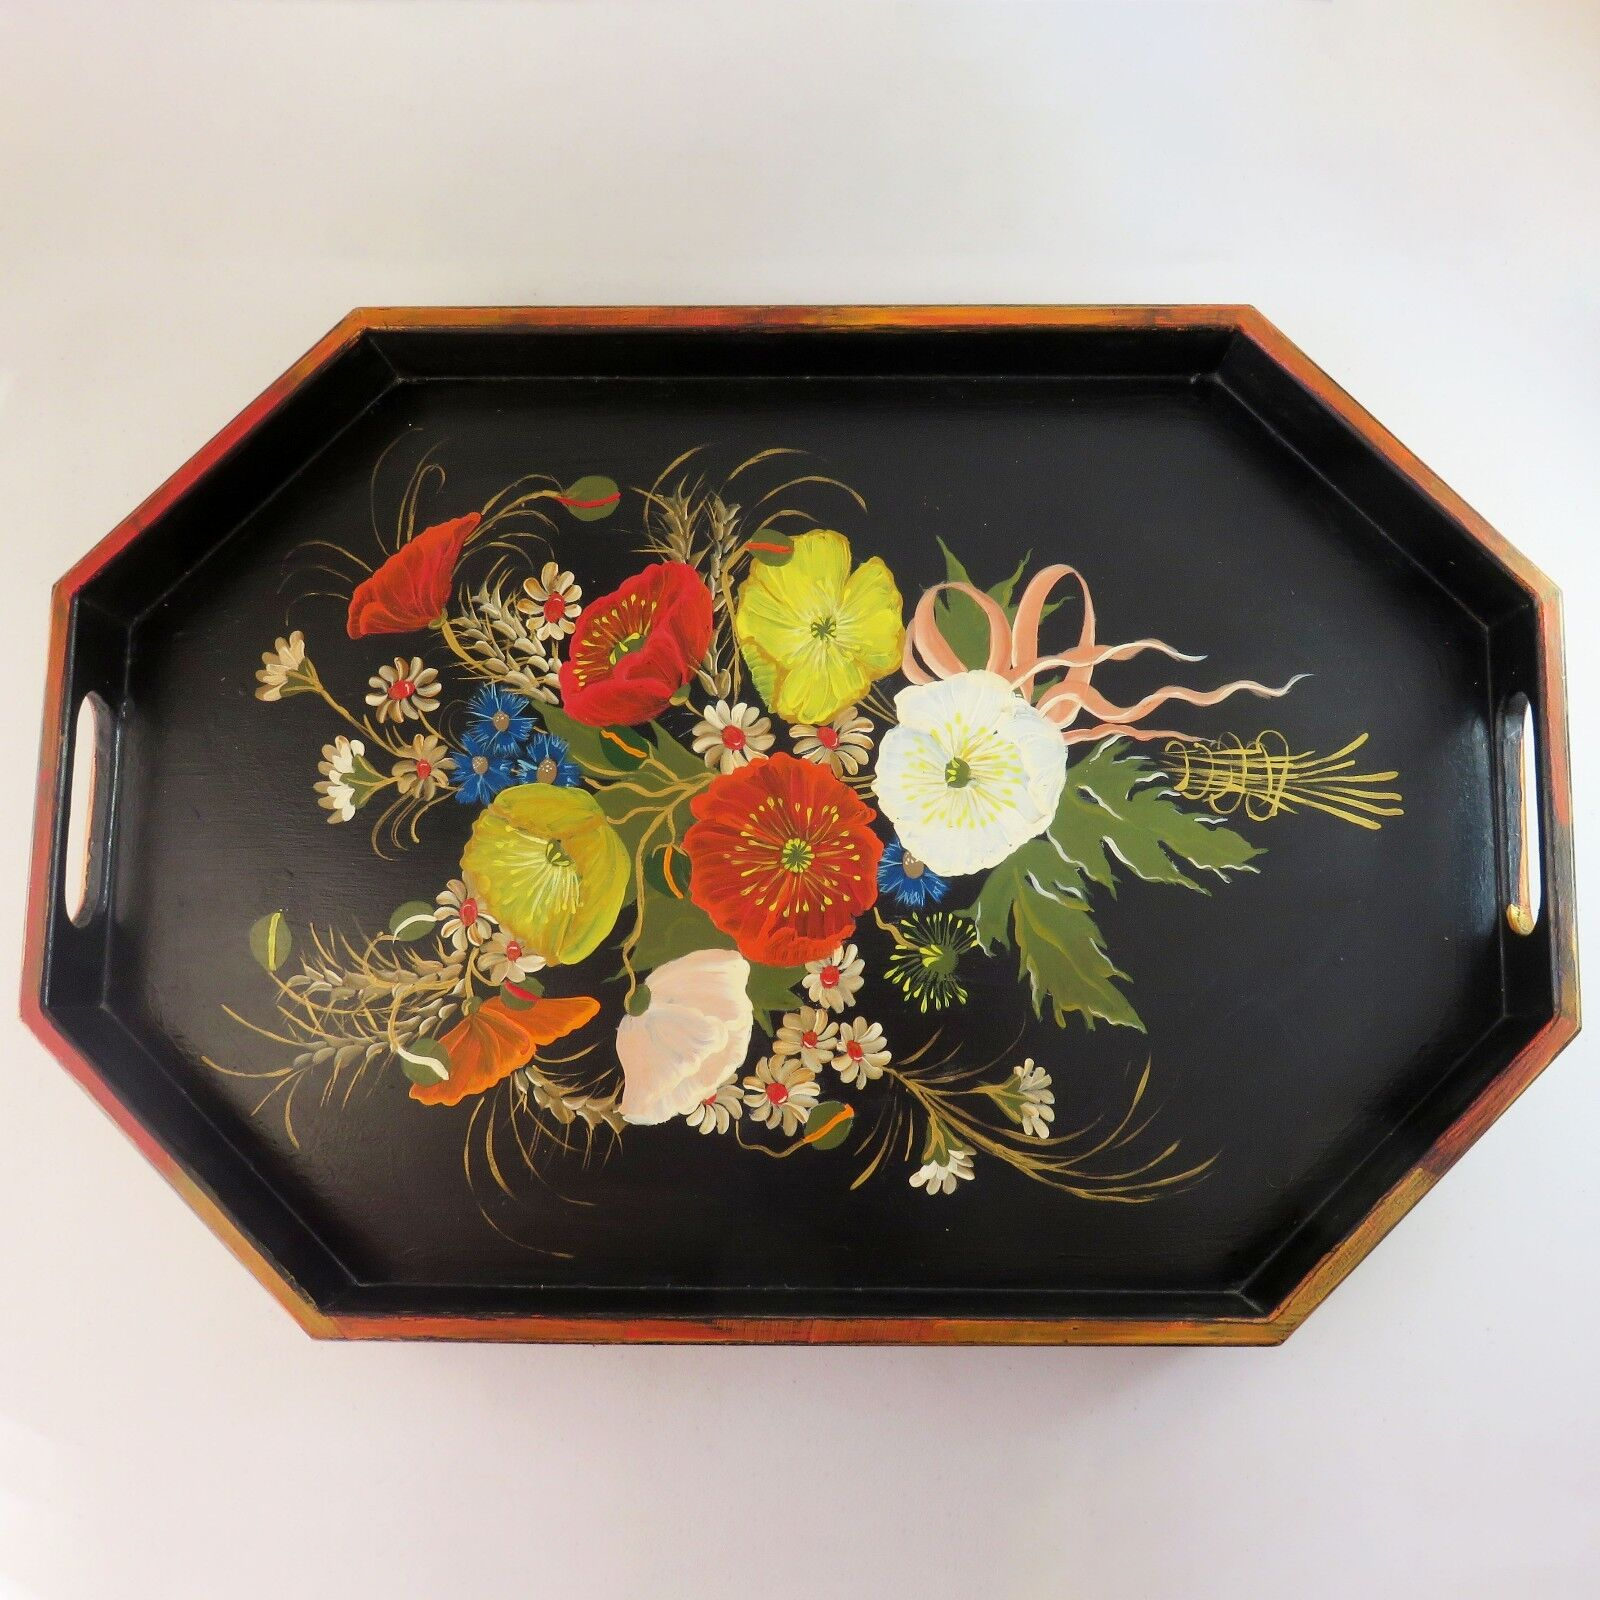 Vintage Wooden Handmade Painted Floral Art Breakfast Serving Tray With Handles